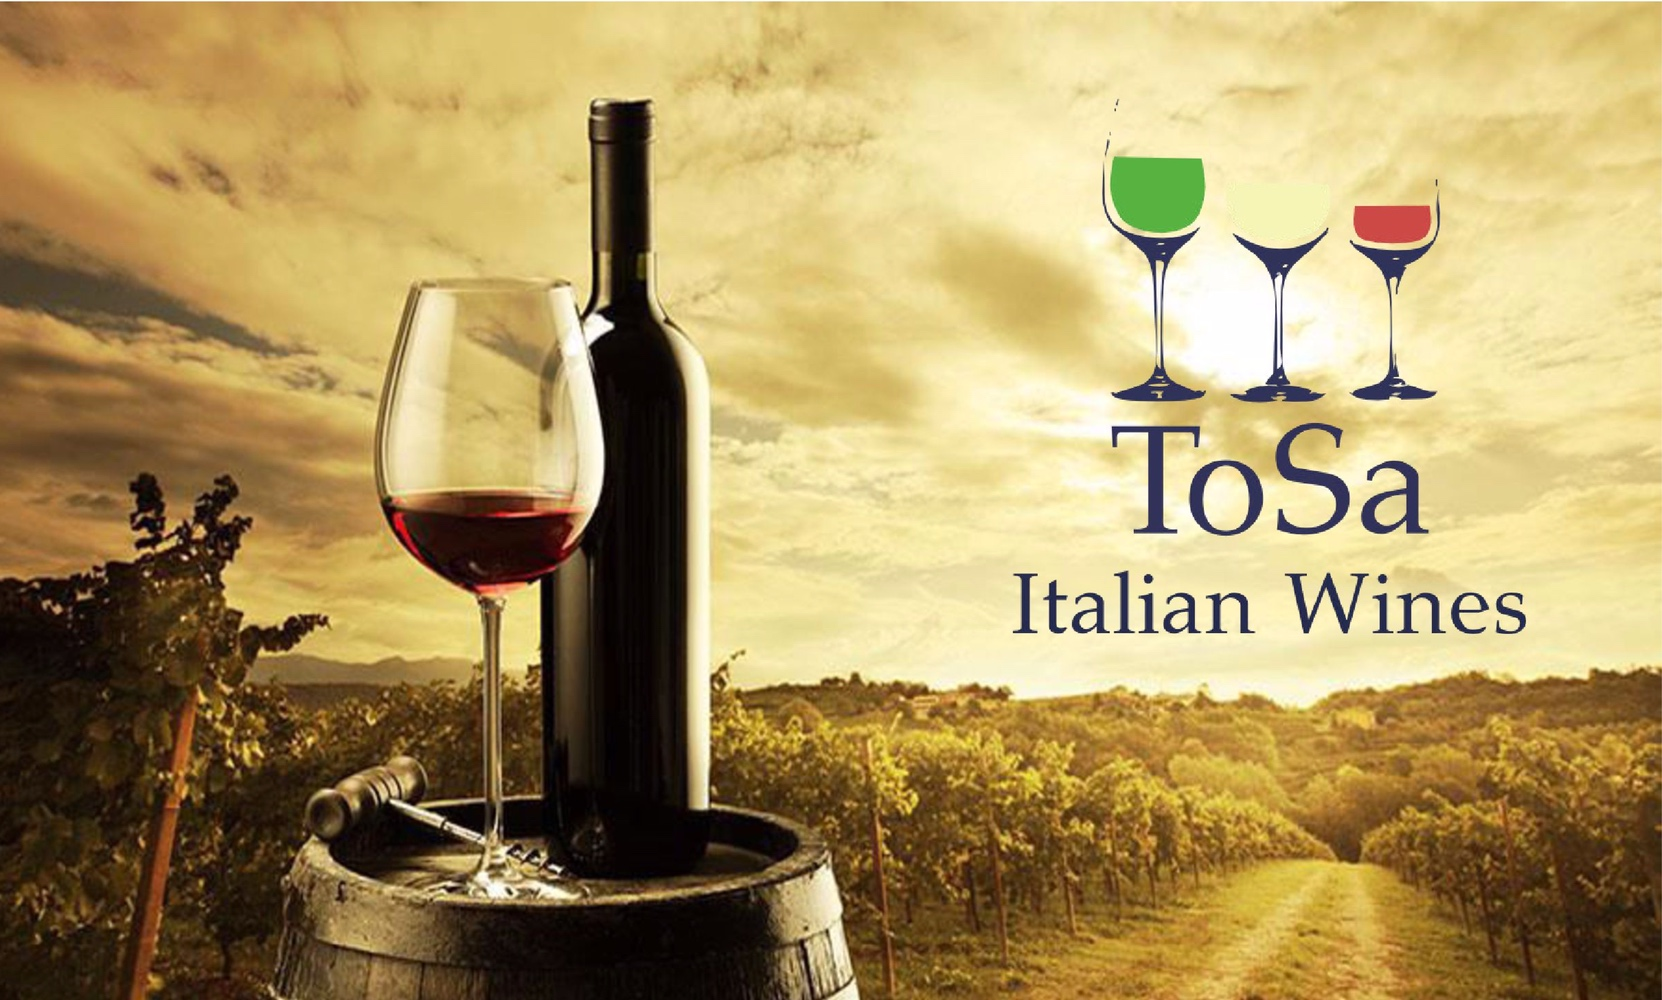 The Italian wines of ToSa